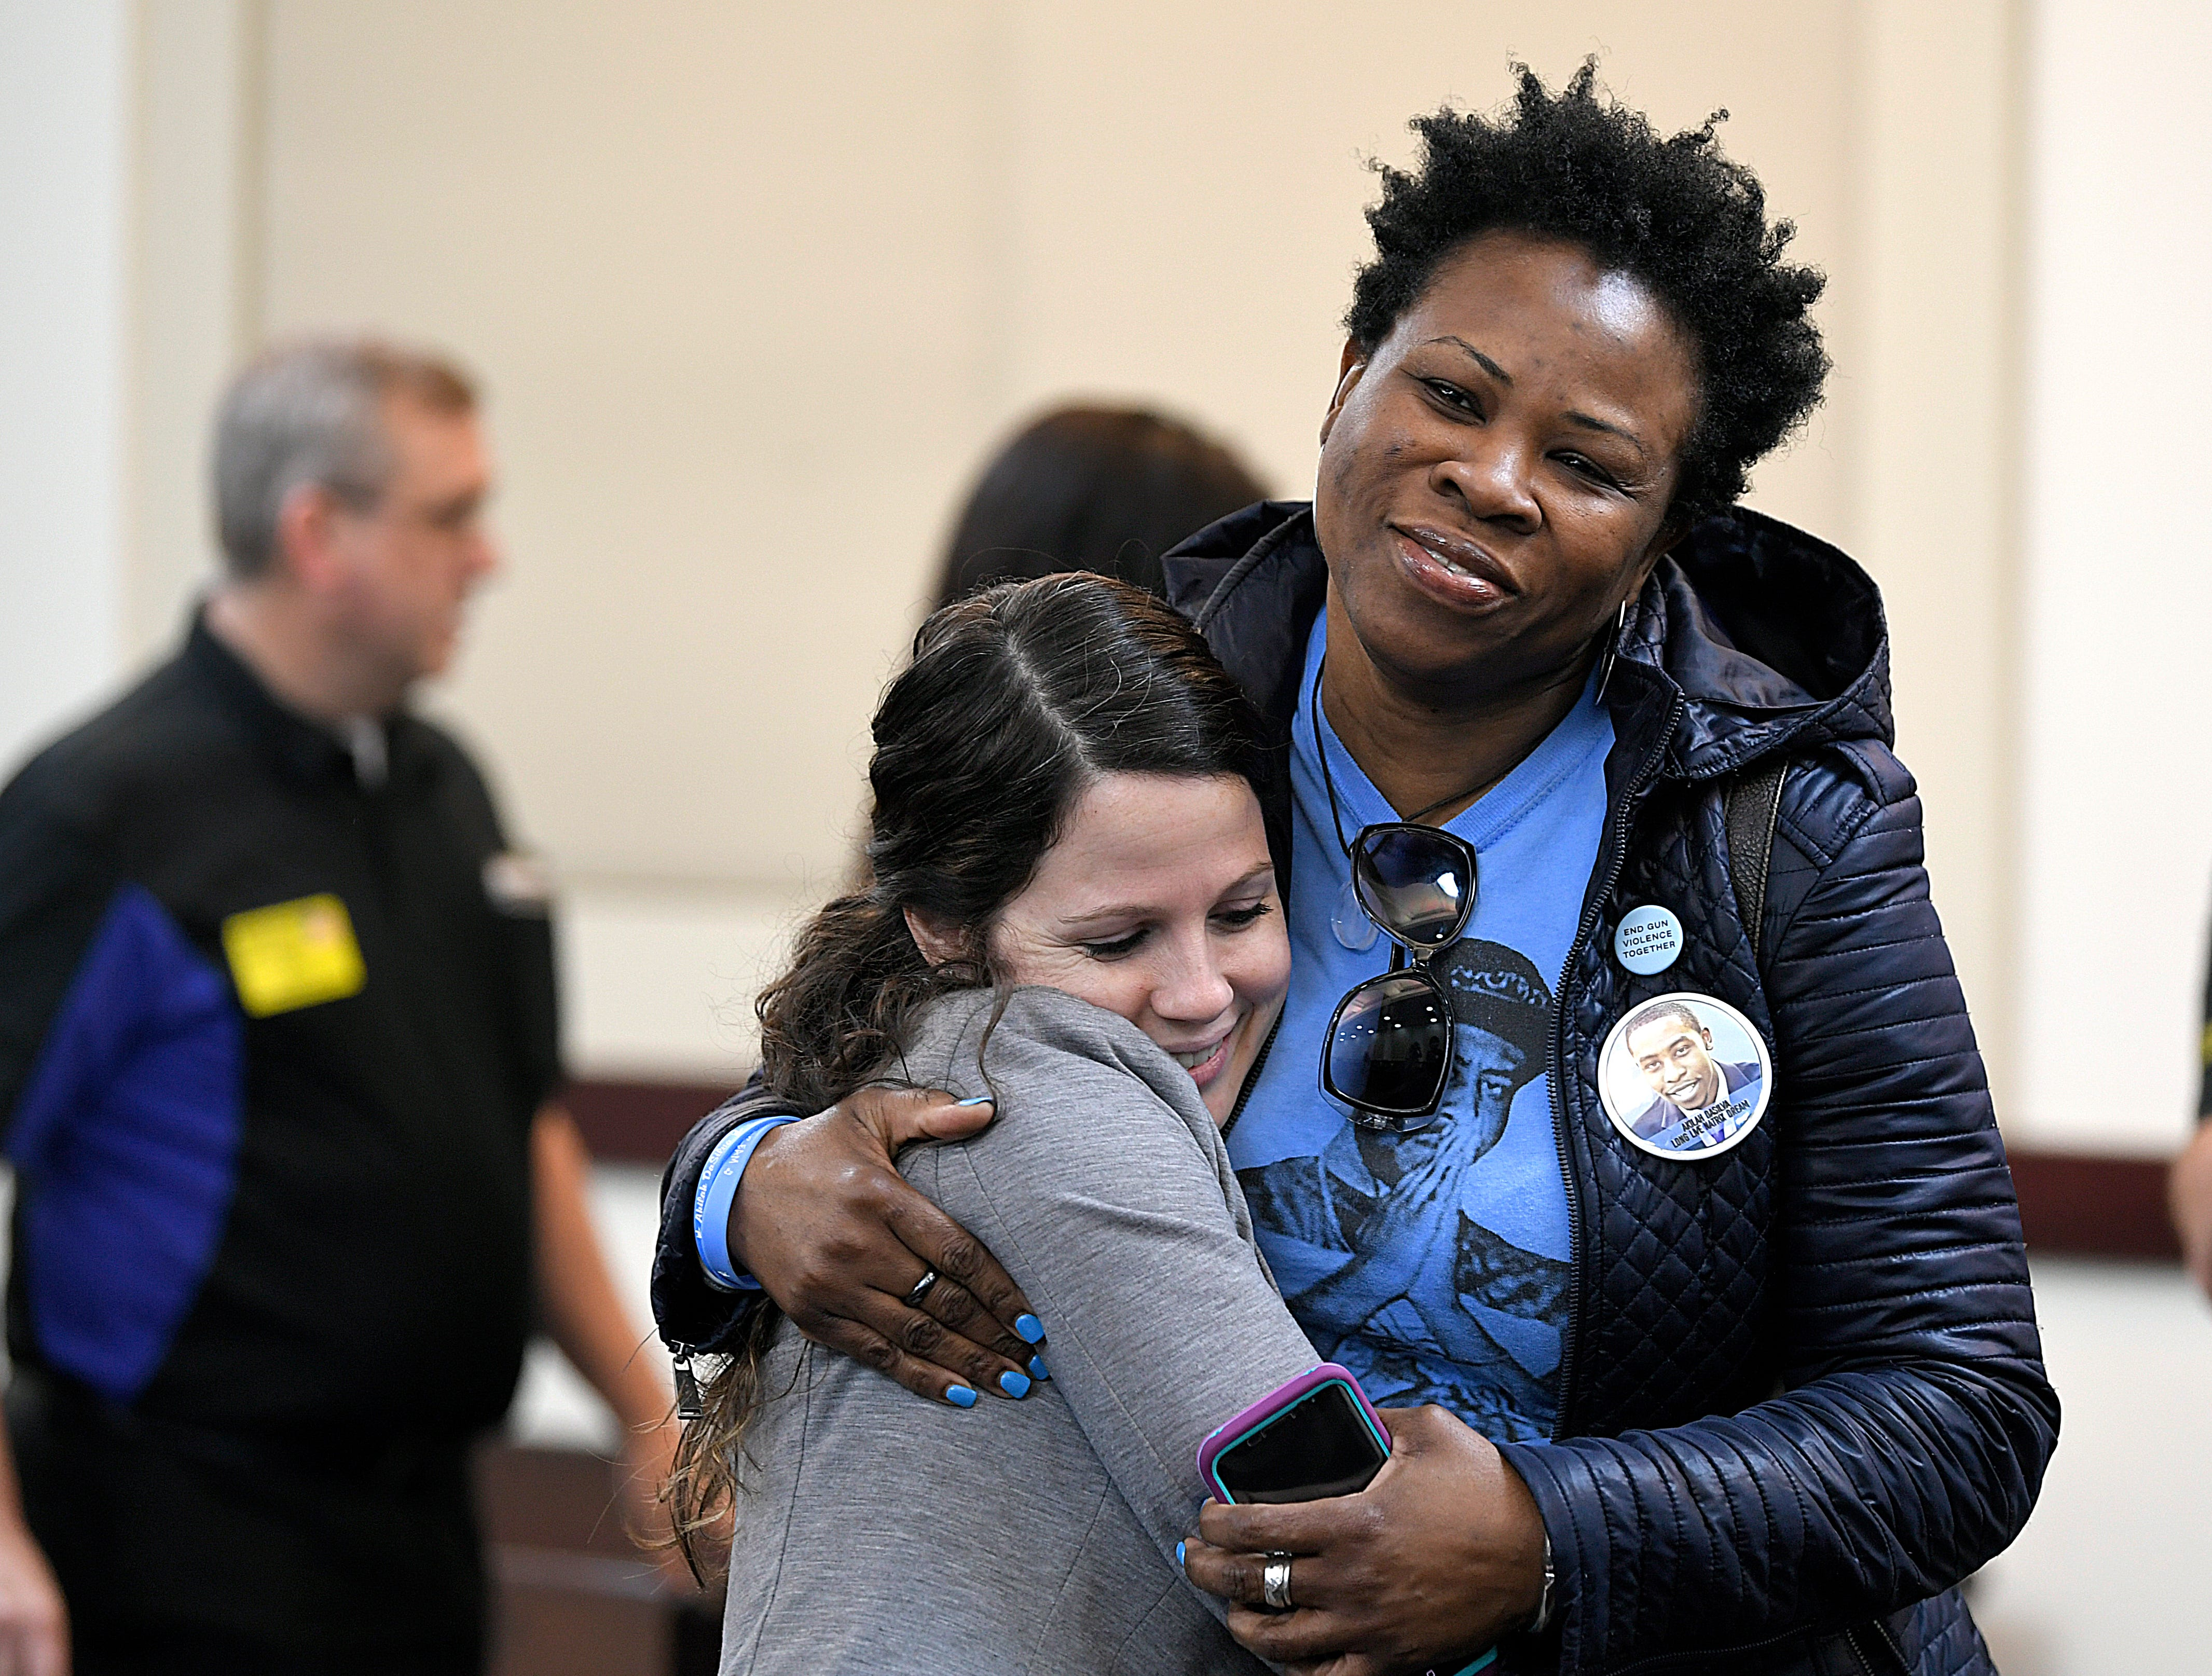 Shaundelle Brooks, mother of Waffle House victim Akilah Dasilva, hugs supporters before Waffle House shooting suspect Travis Reinking's hearing on Wednesday, Feb. 13, 2019.